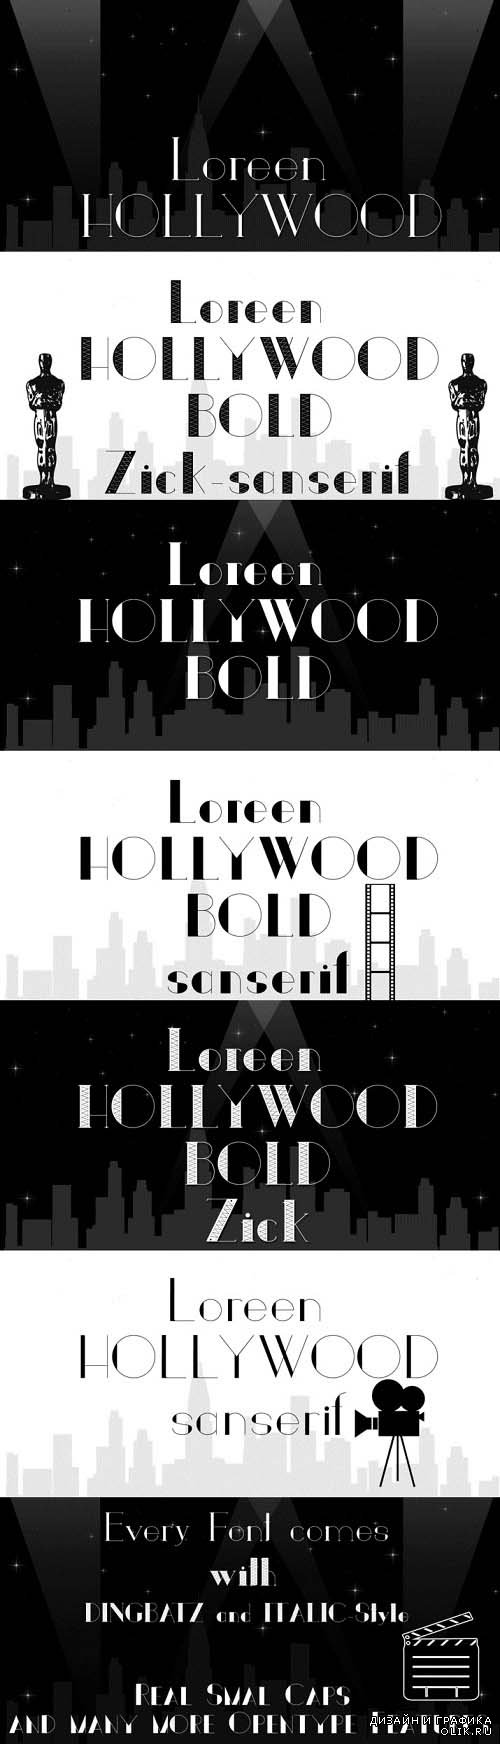 Loreen Hollywood Font Style